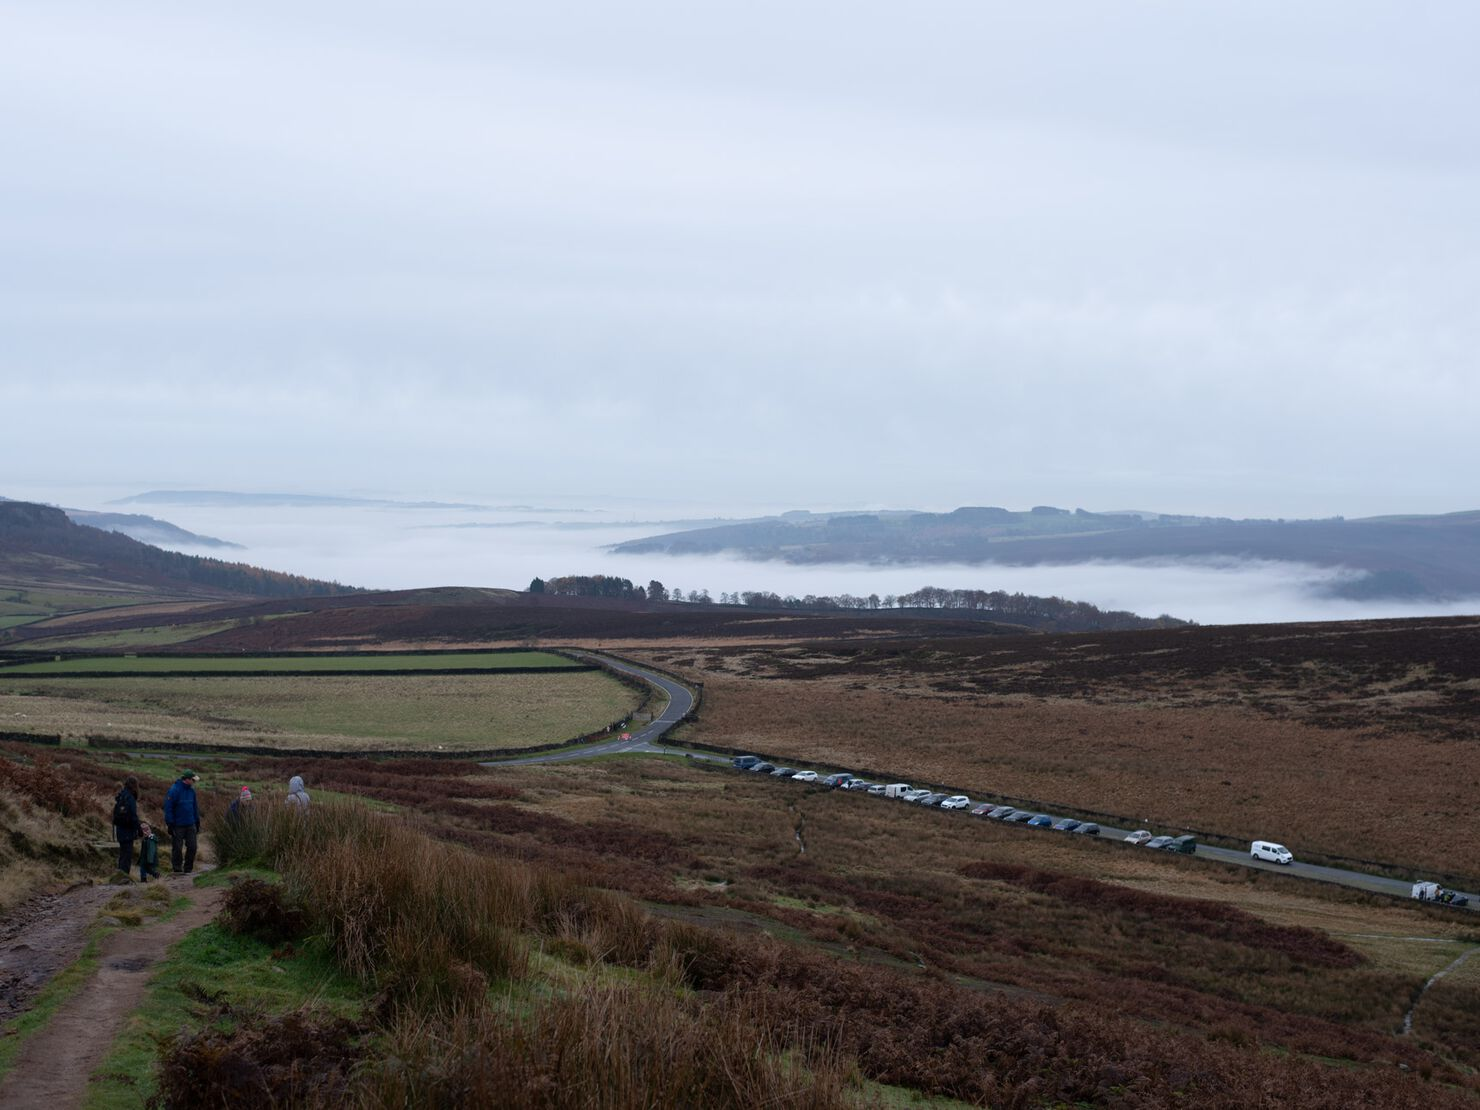 Climbing up to Stanage Edge on a misty Saturday morning